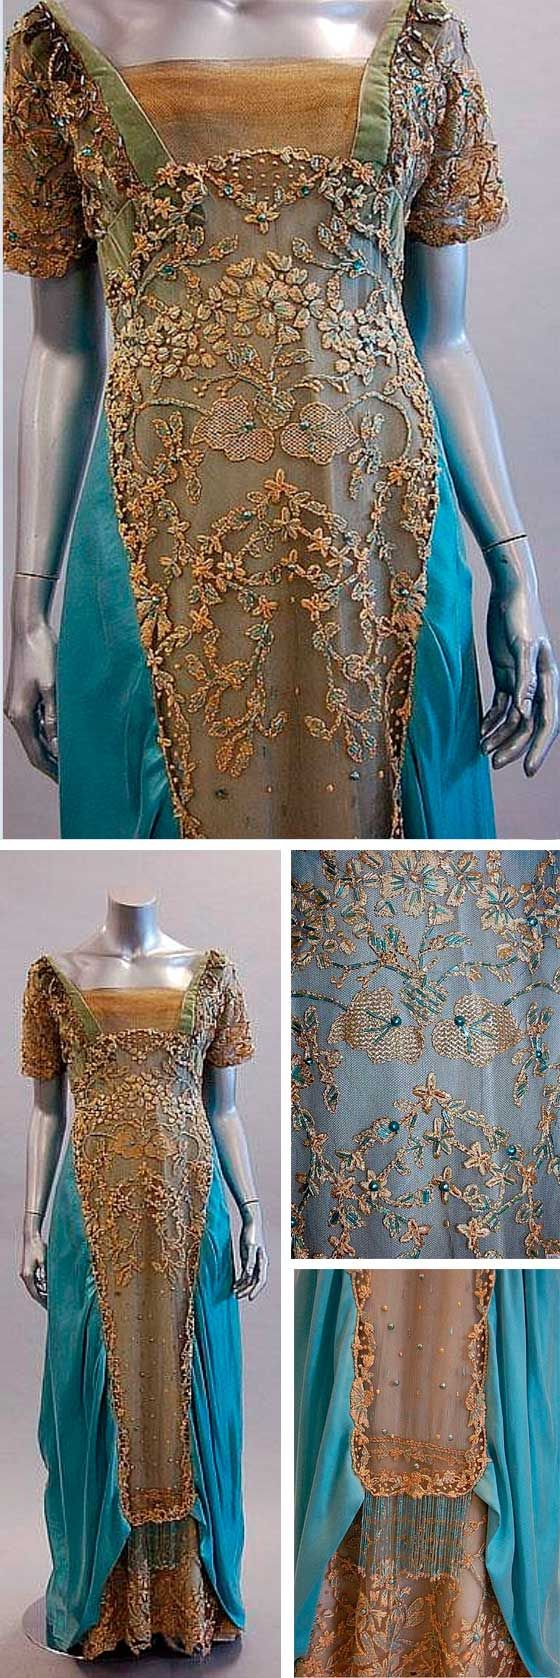 A reconstructed/restored Callot Soeurs evening gown, ca. 1908, labelled to the waist, of blue satin with elaborately beaded and embroidered tulle overlays. Kerry Taylor Auctions